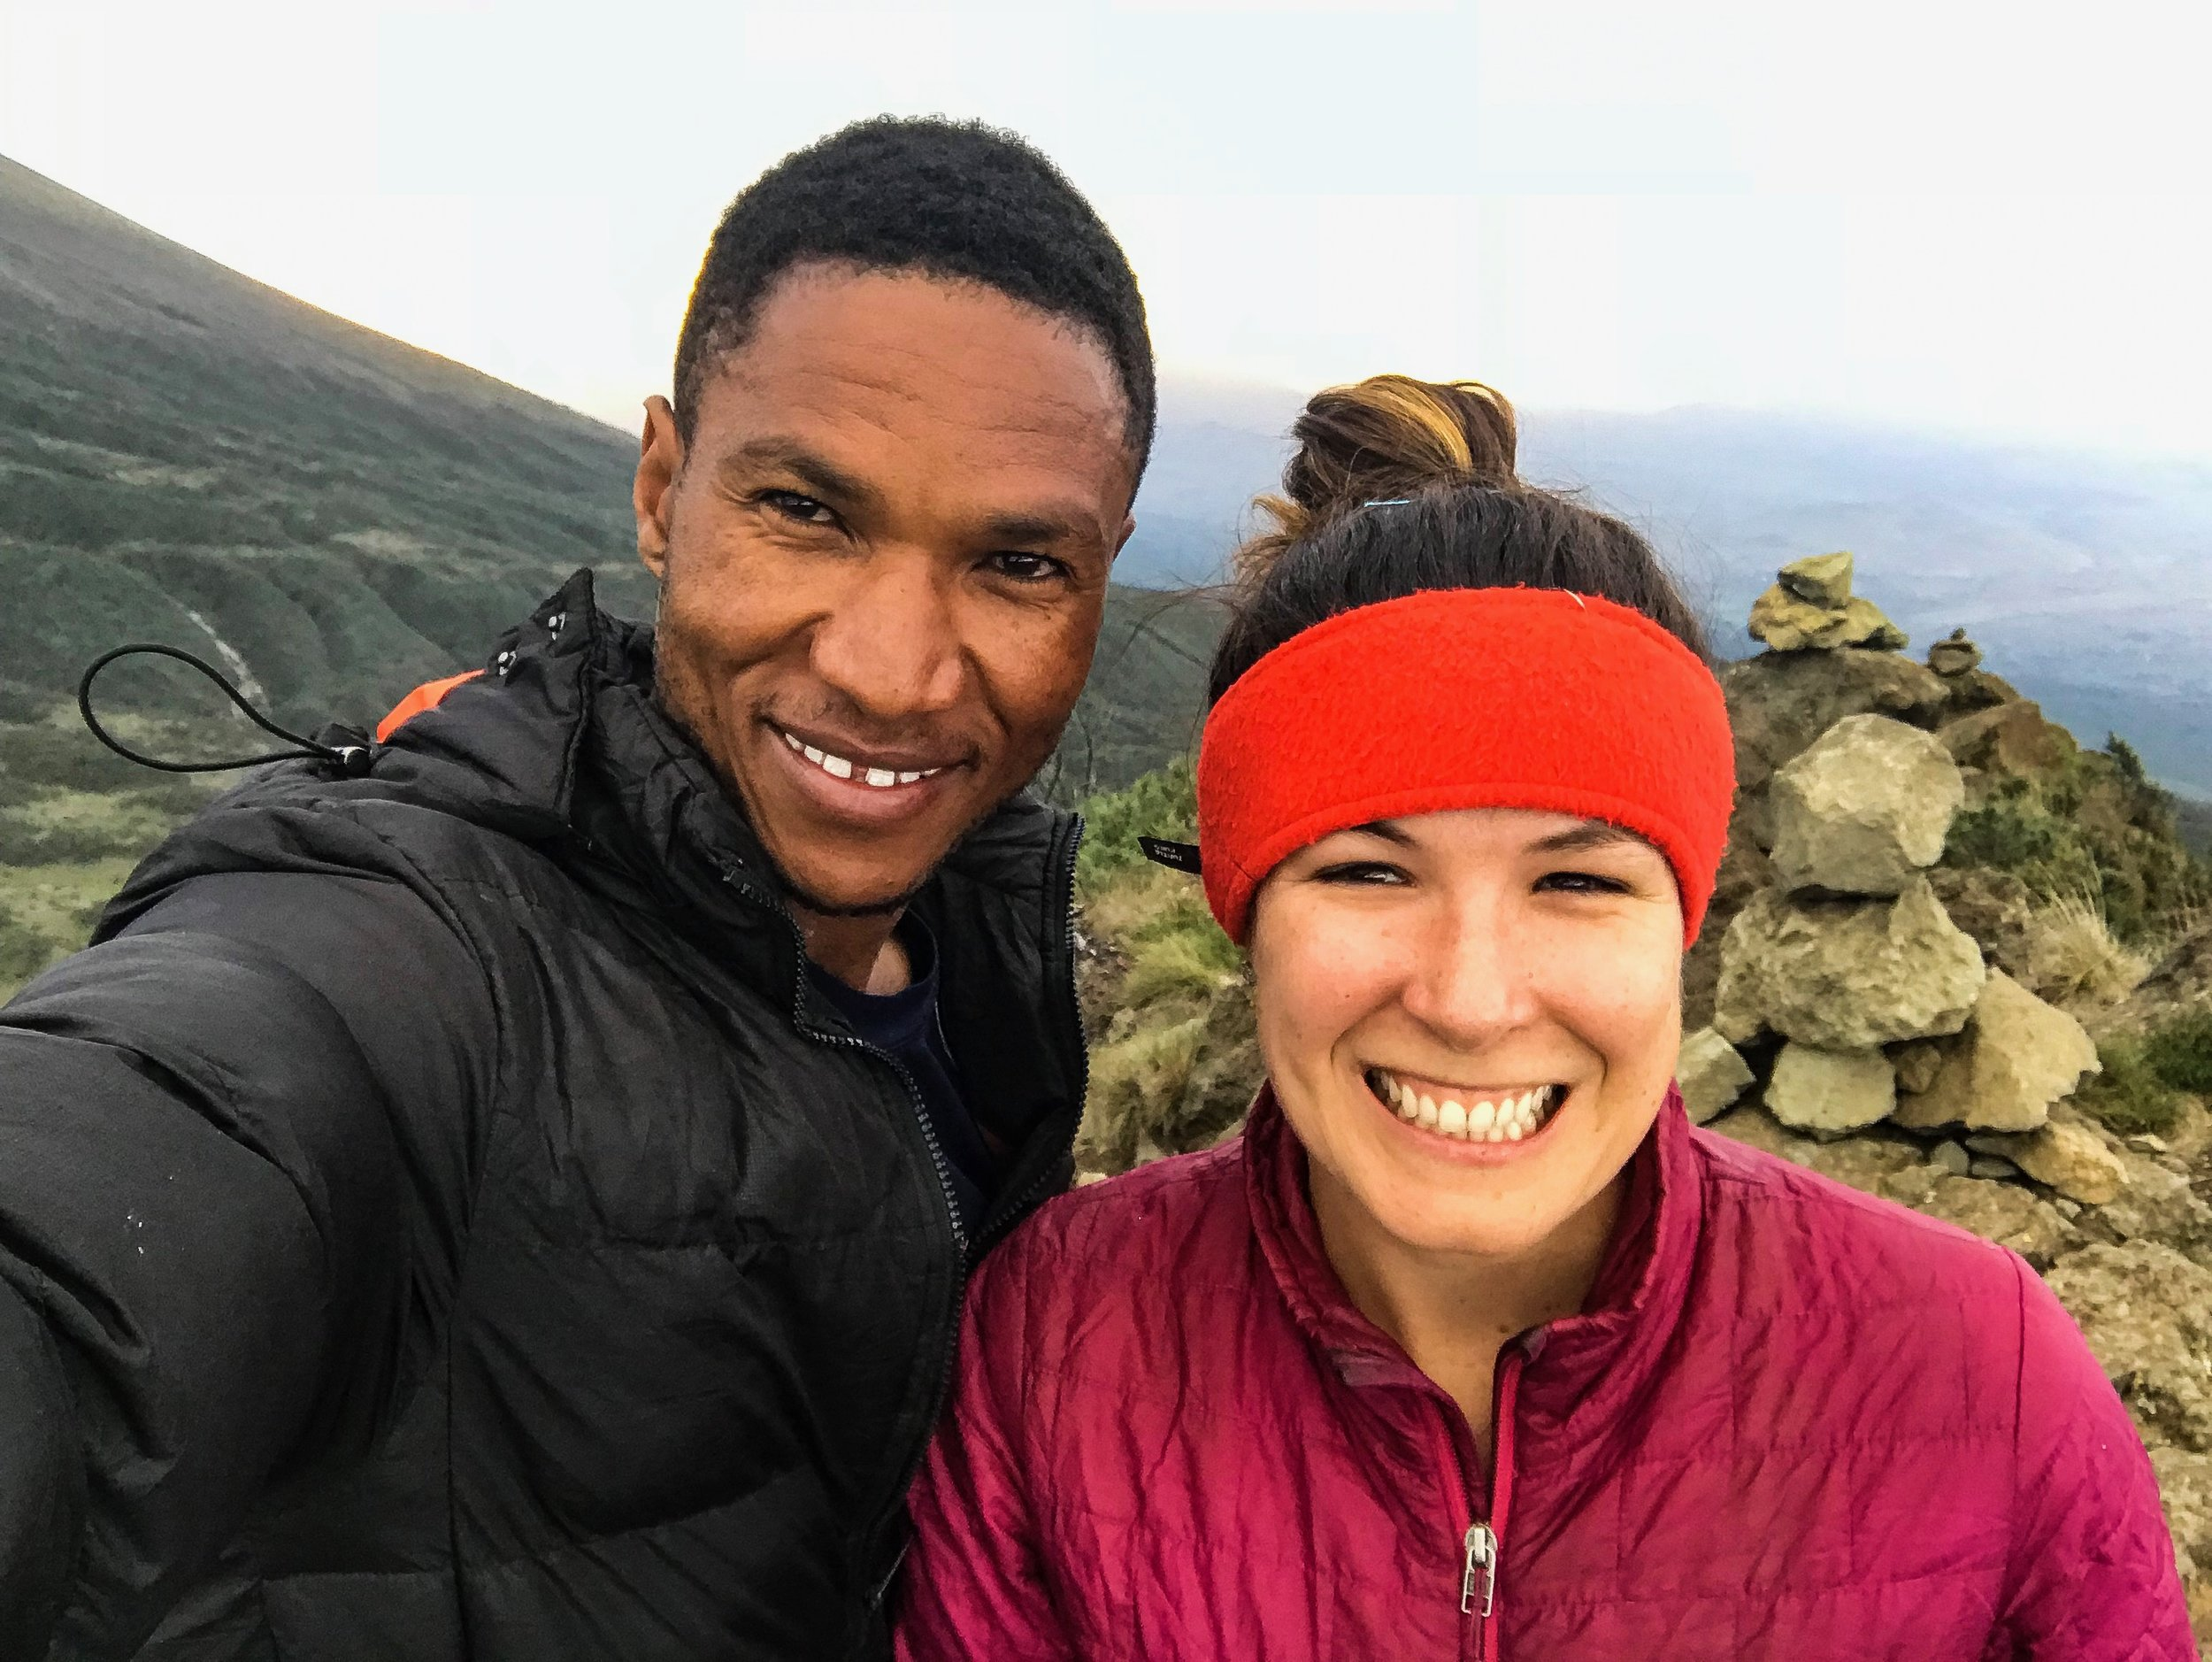 Okay, I am not a selfie person but…summit selfies with my tried and true guide are a must.